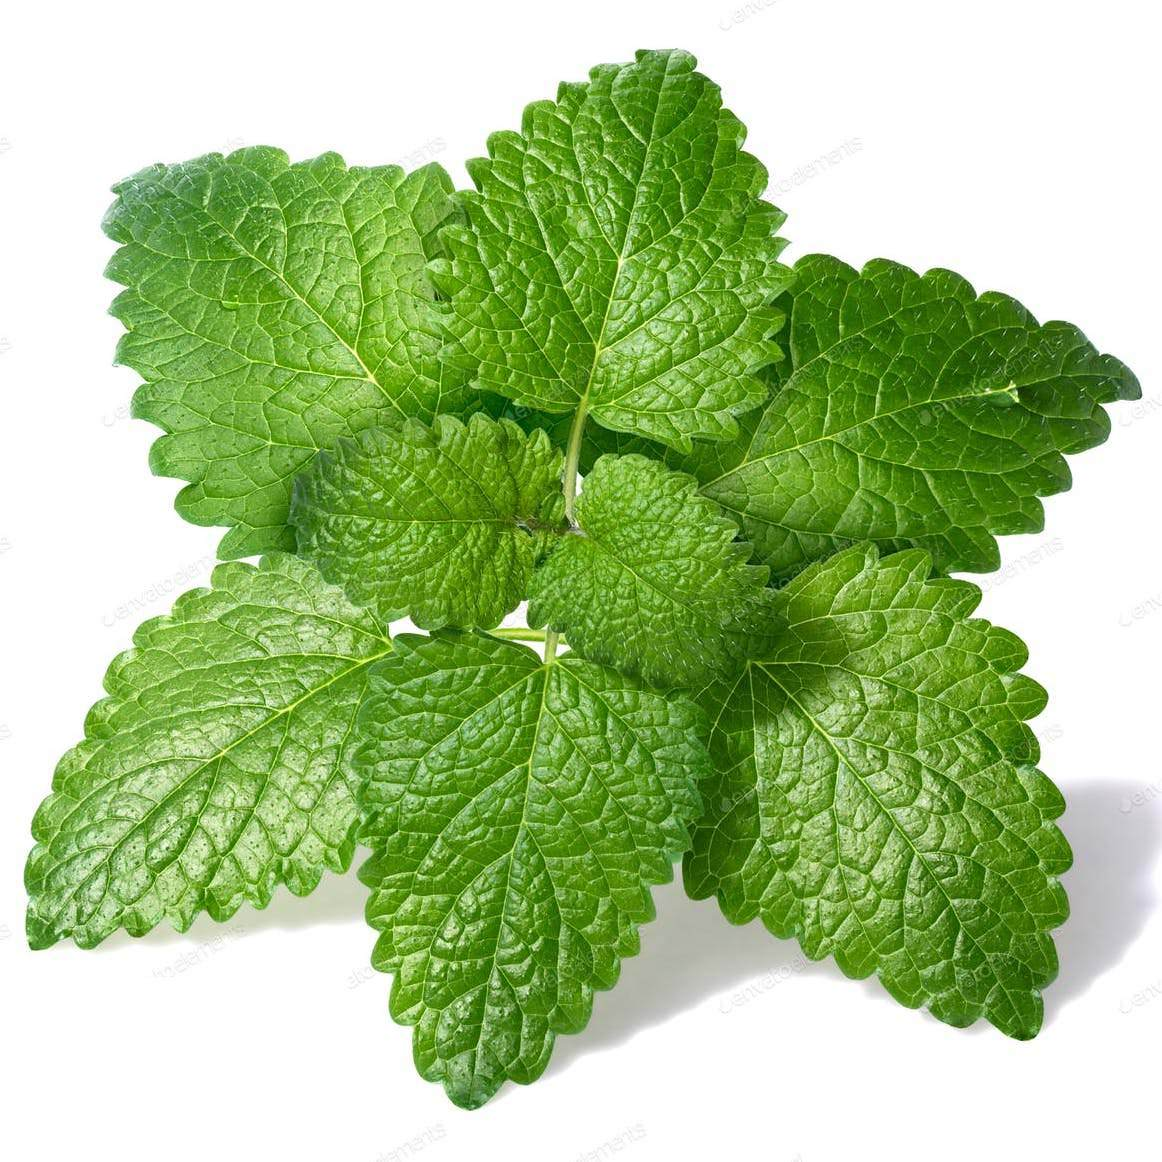 Melissa Essential Oil | Organic Lemon Balm Essential Oil - Nature ...